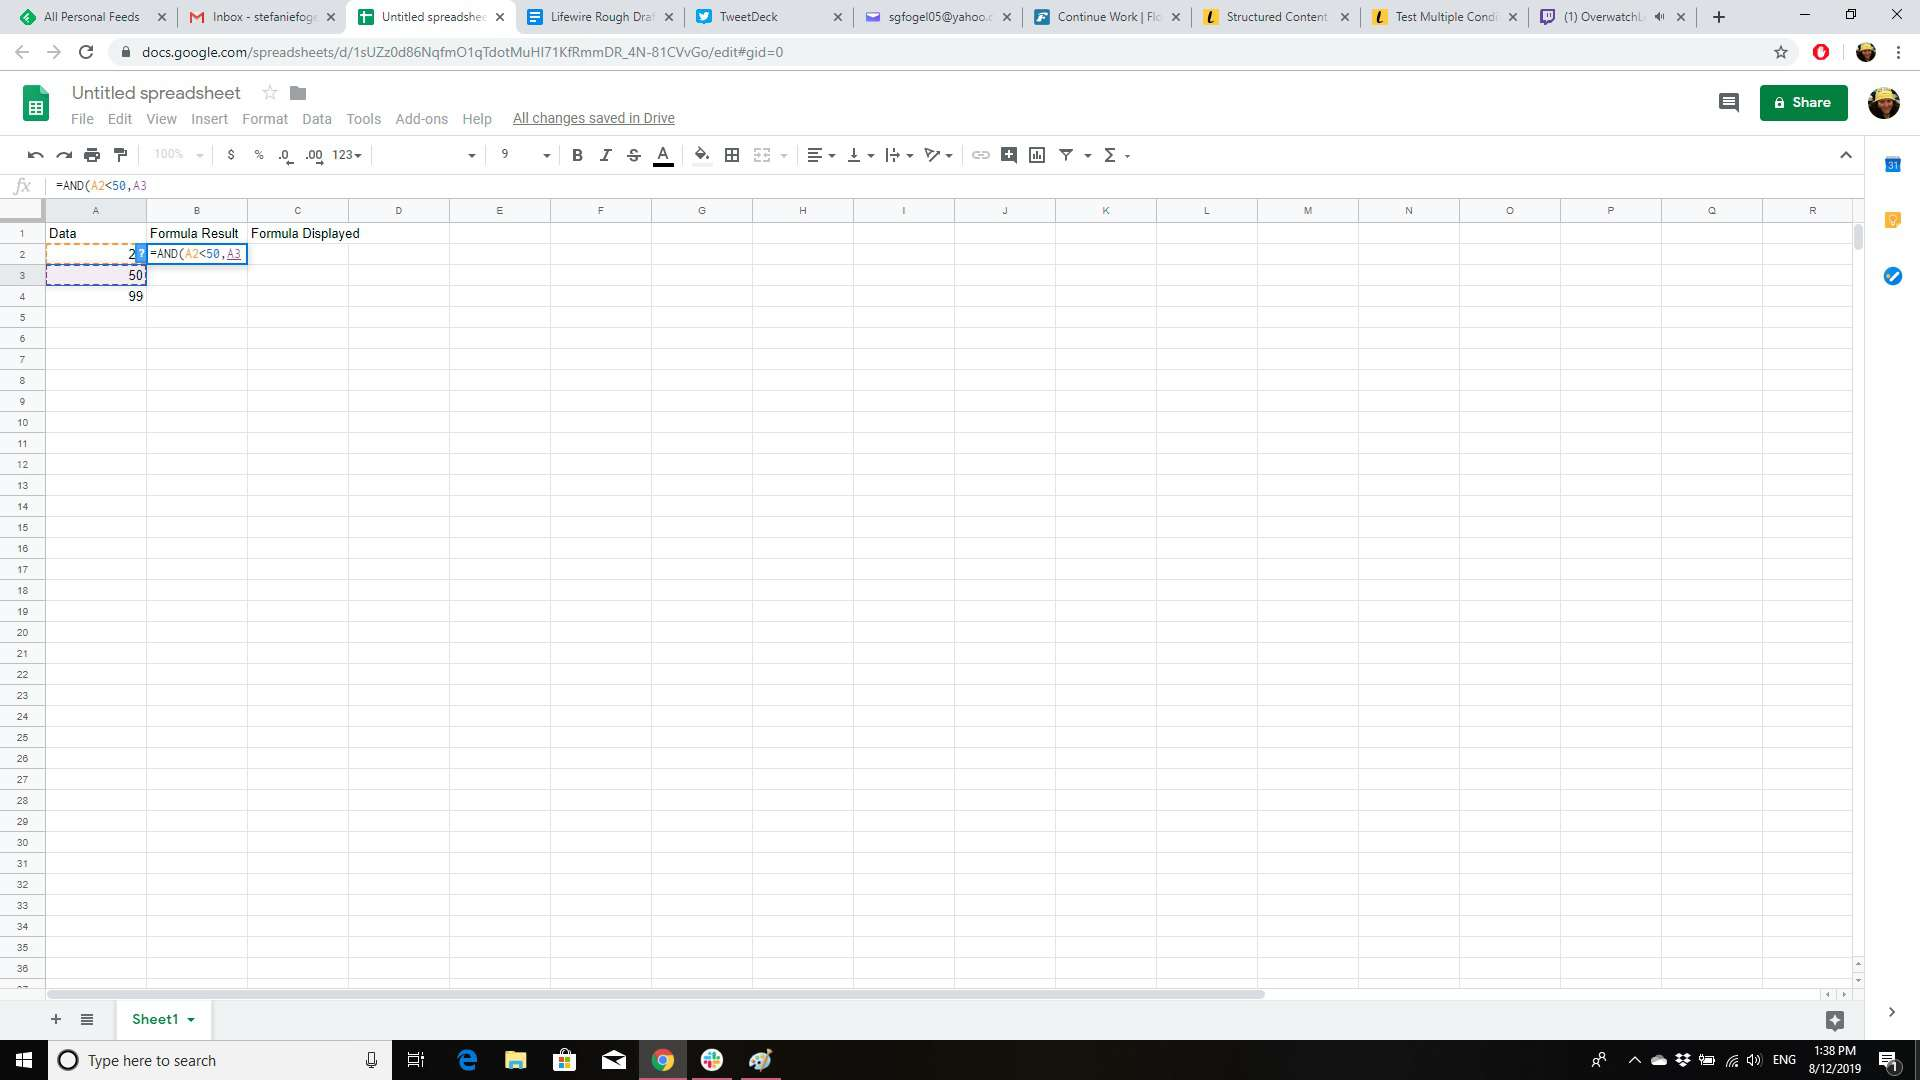 Test Multiple Conditions Using And Or In Sheets